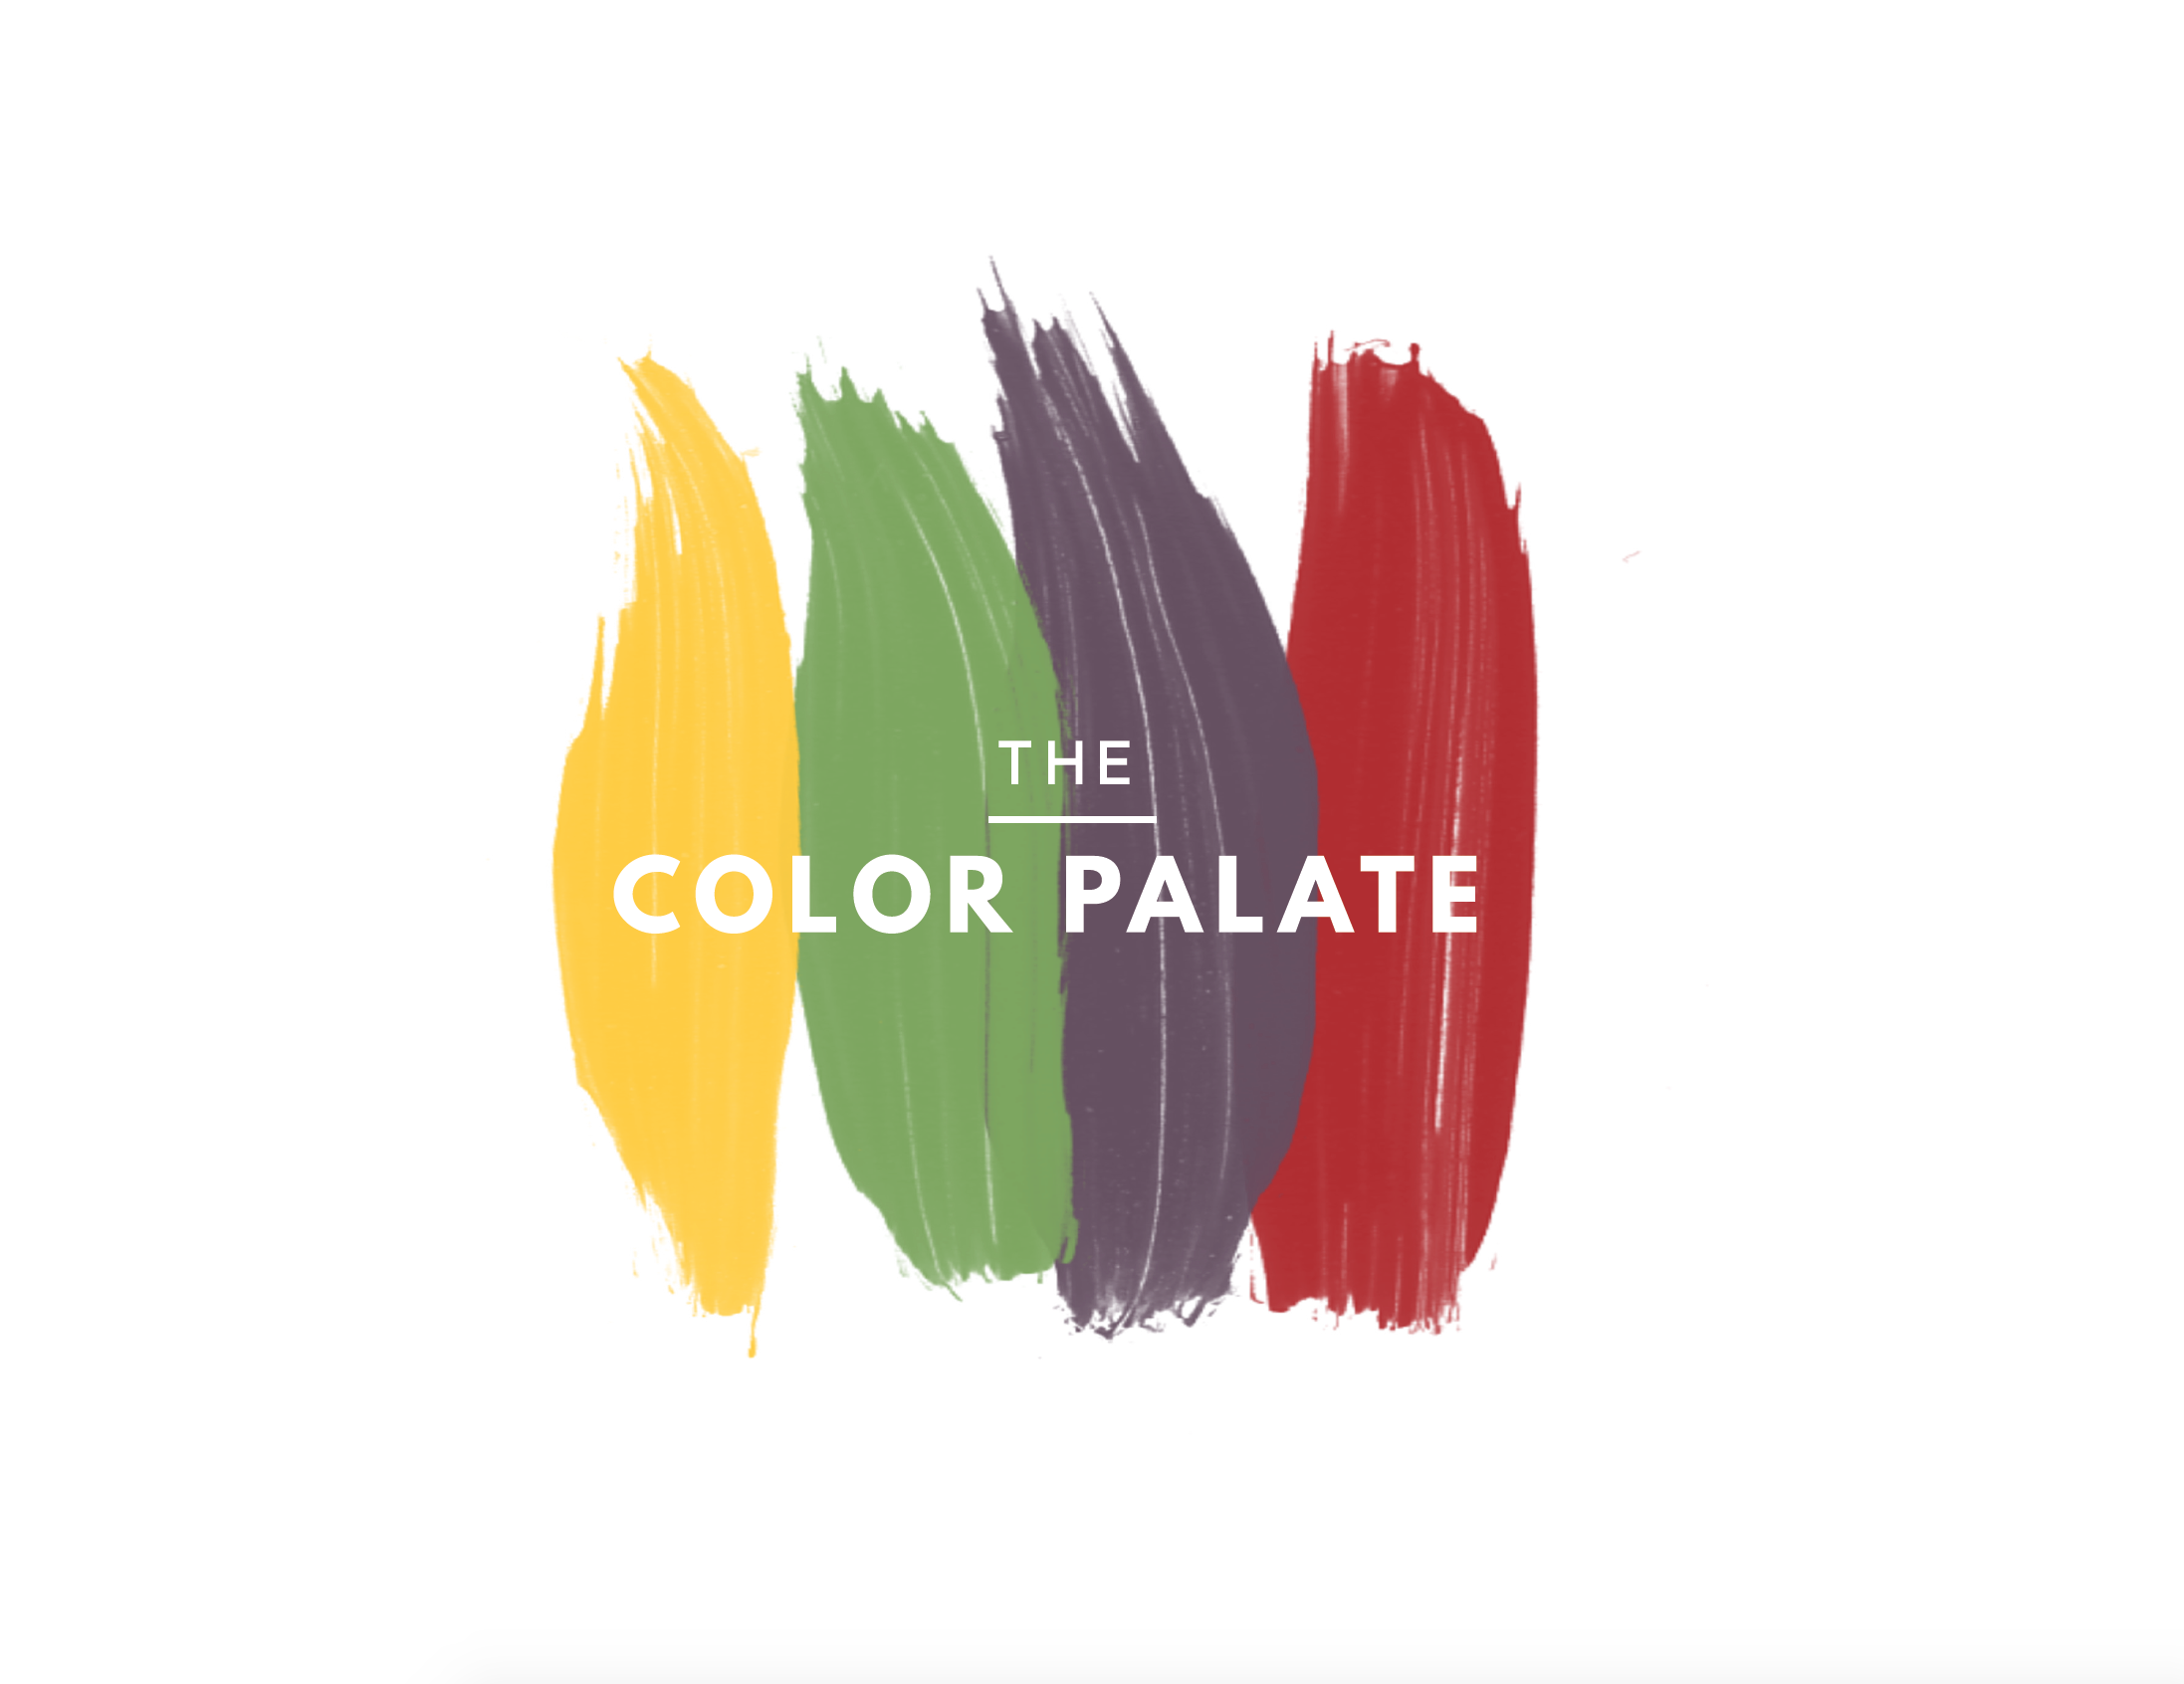 The Color Palate